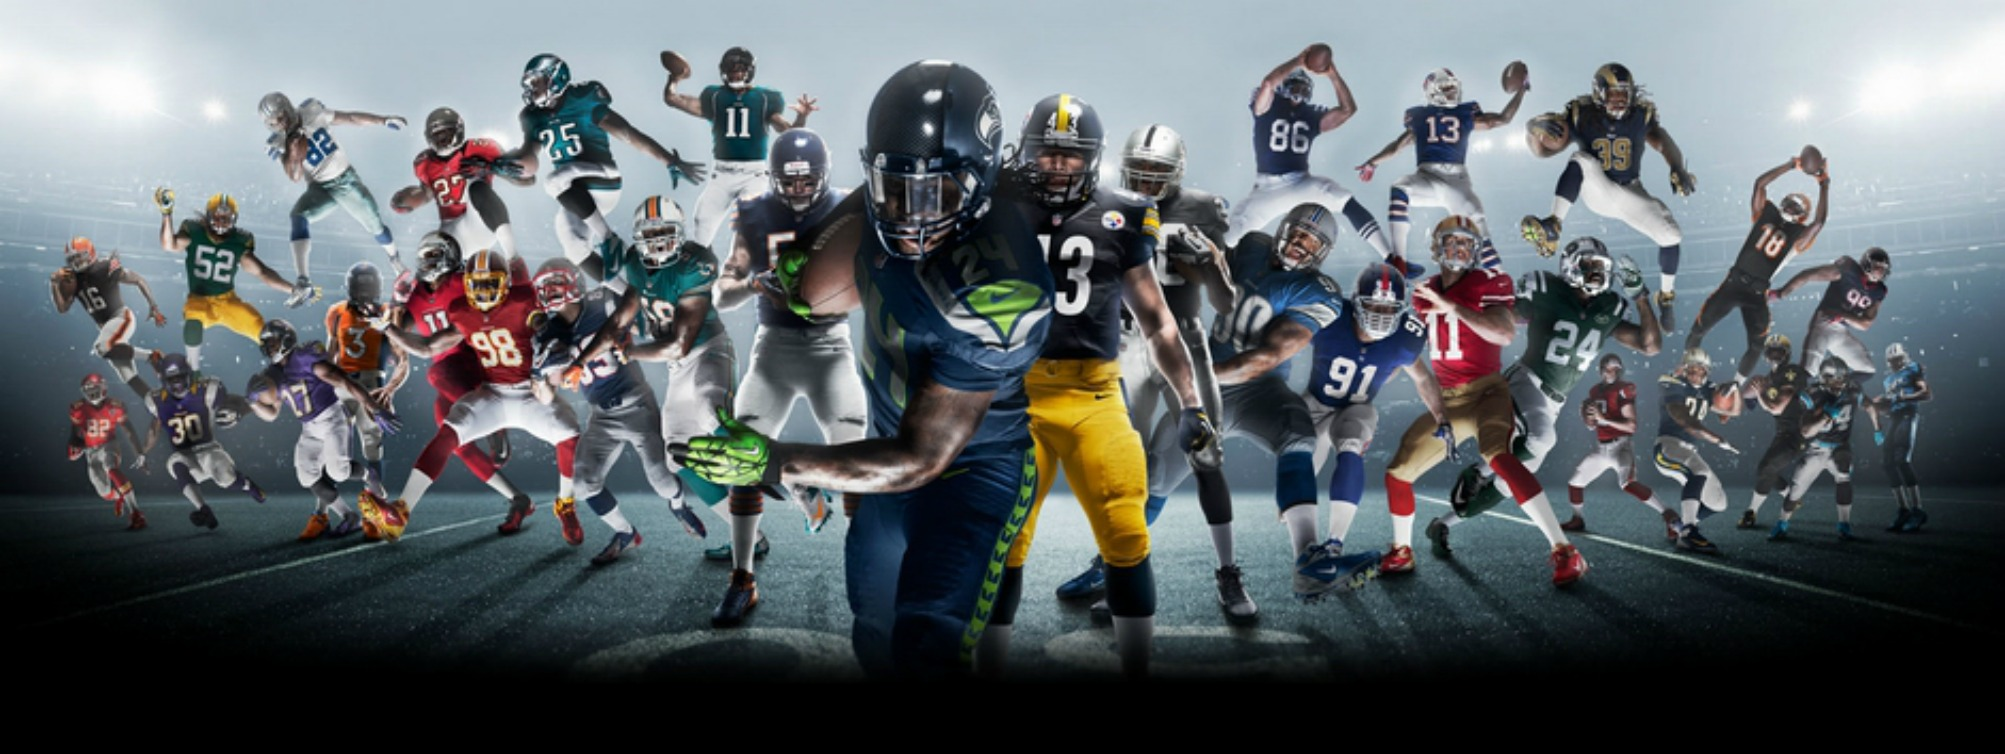 NFL HD Wallpapers 2005x754